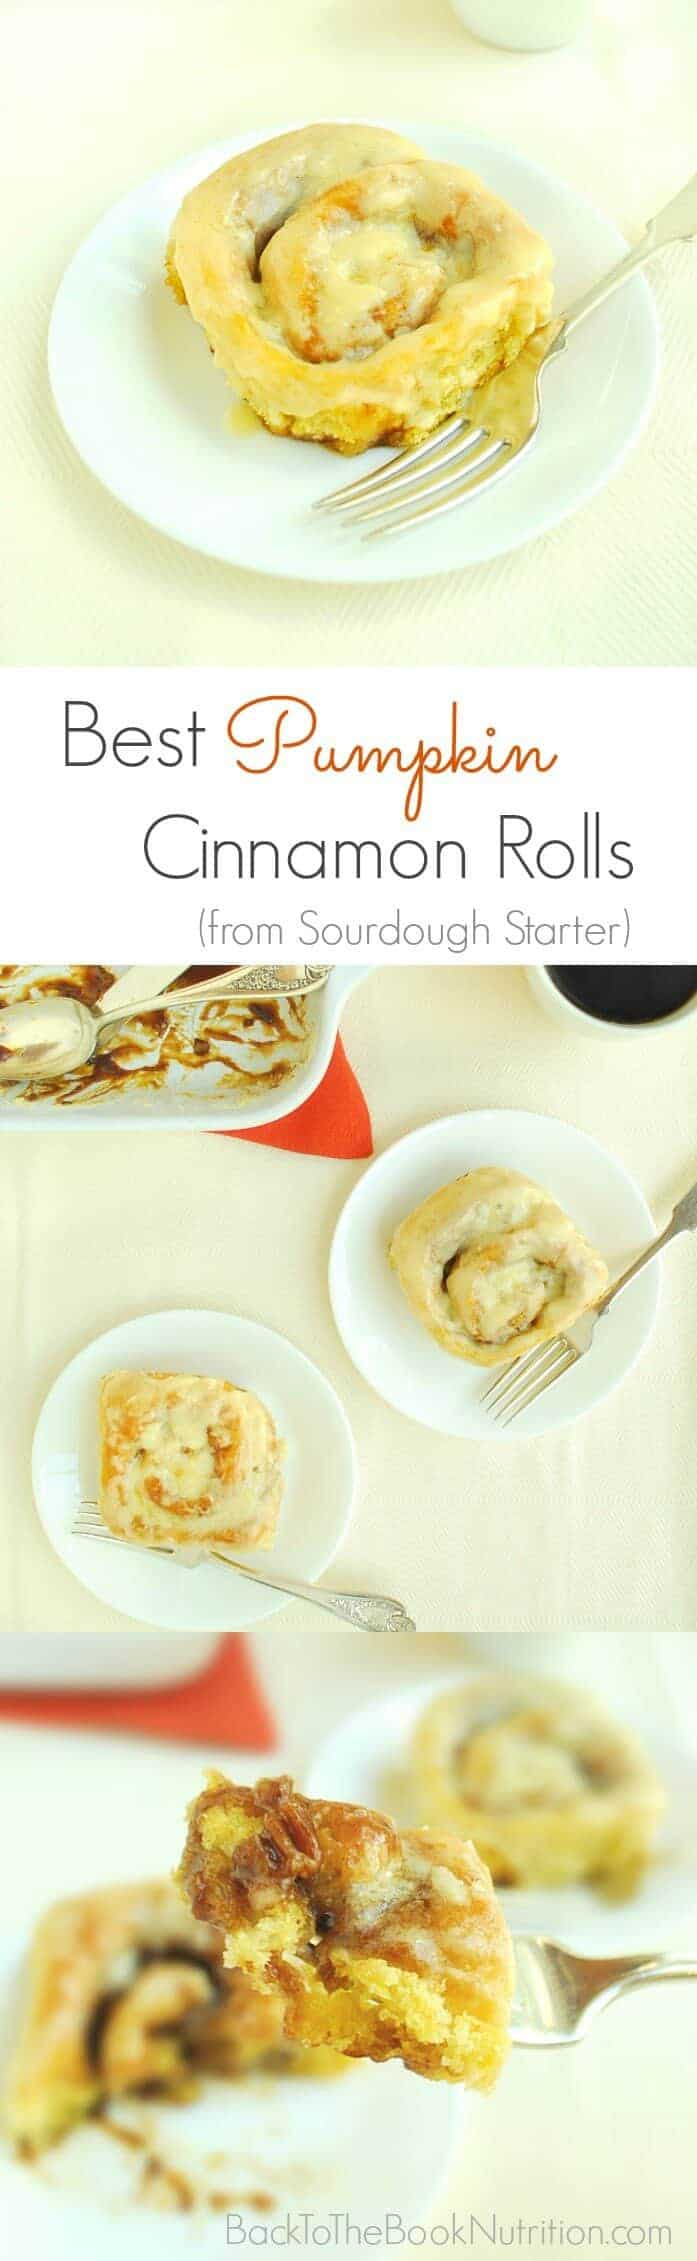 The best homemade pumpkin cinnamon rolls ever, made from sourdough starter! | Back To The Book Nutrition